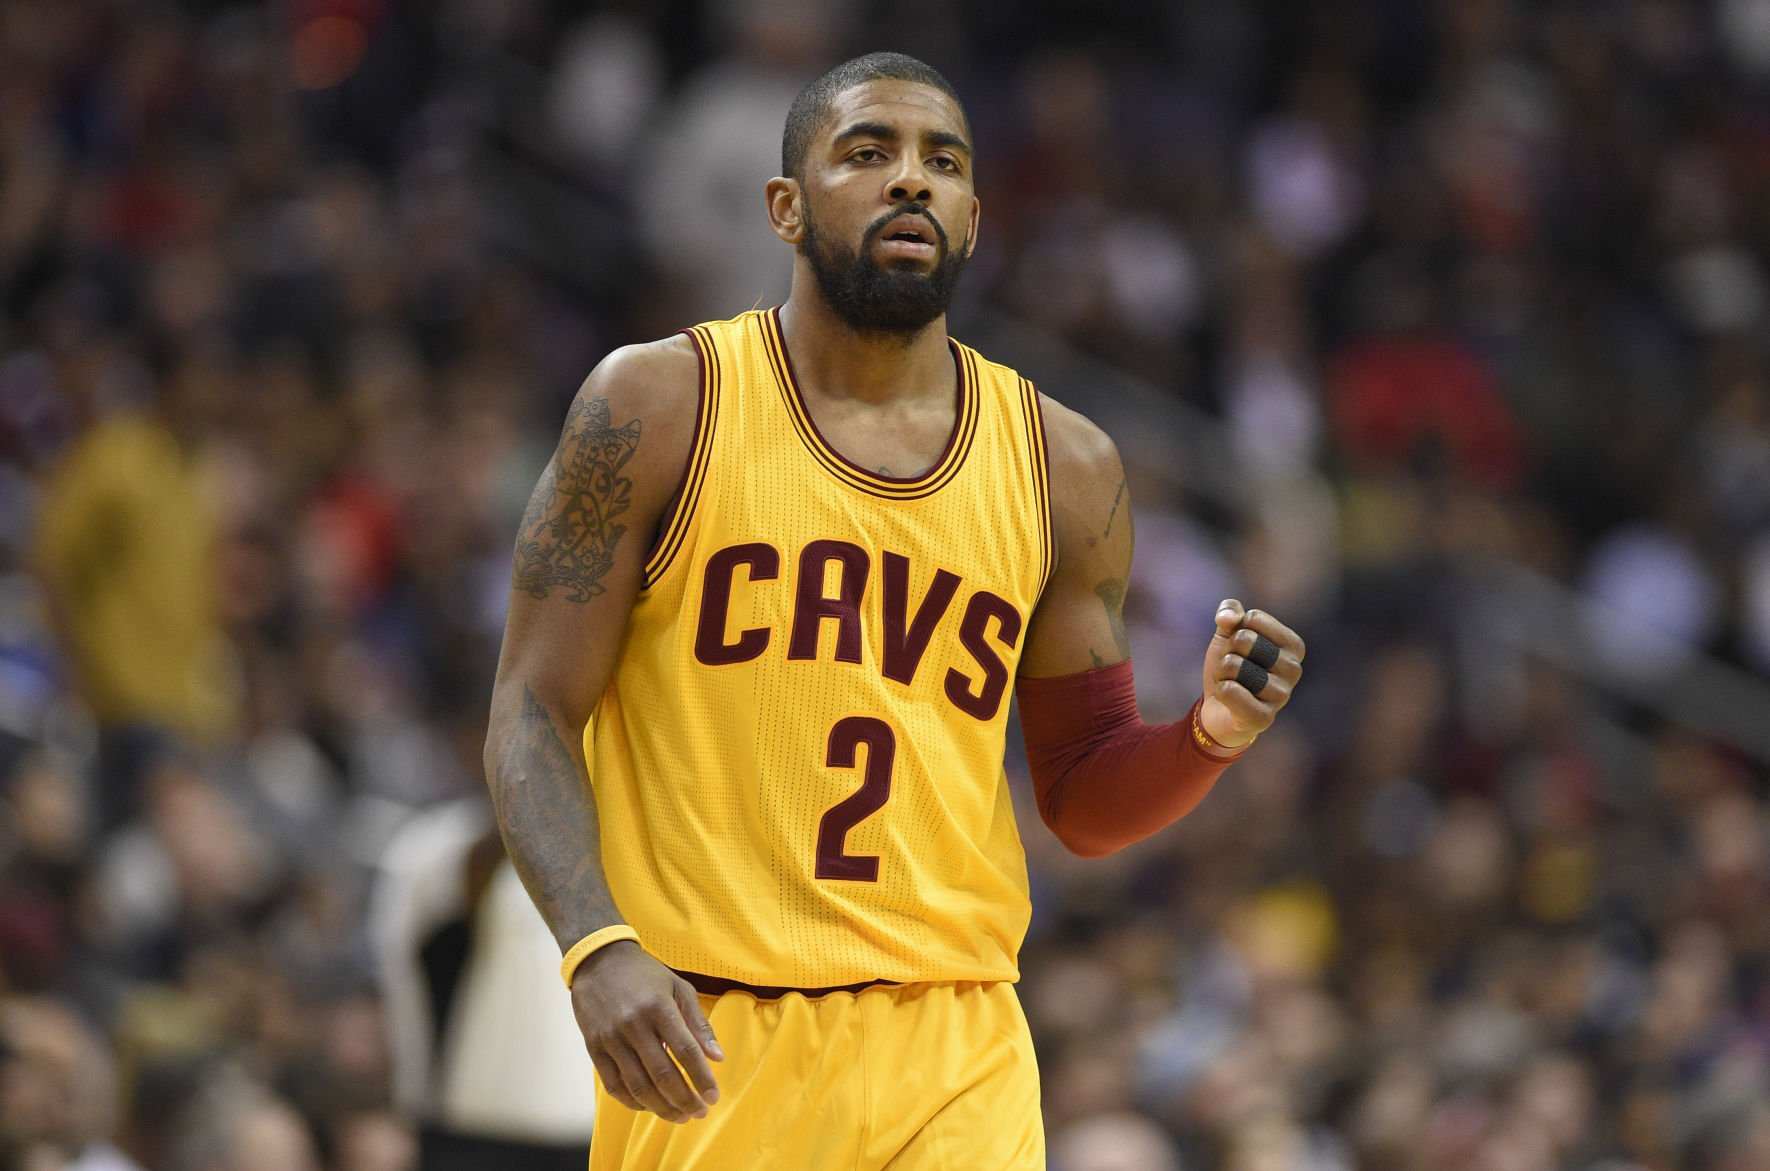 National Basketball Association 2K18 reveals new cover with Kyrie Irving